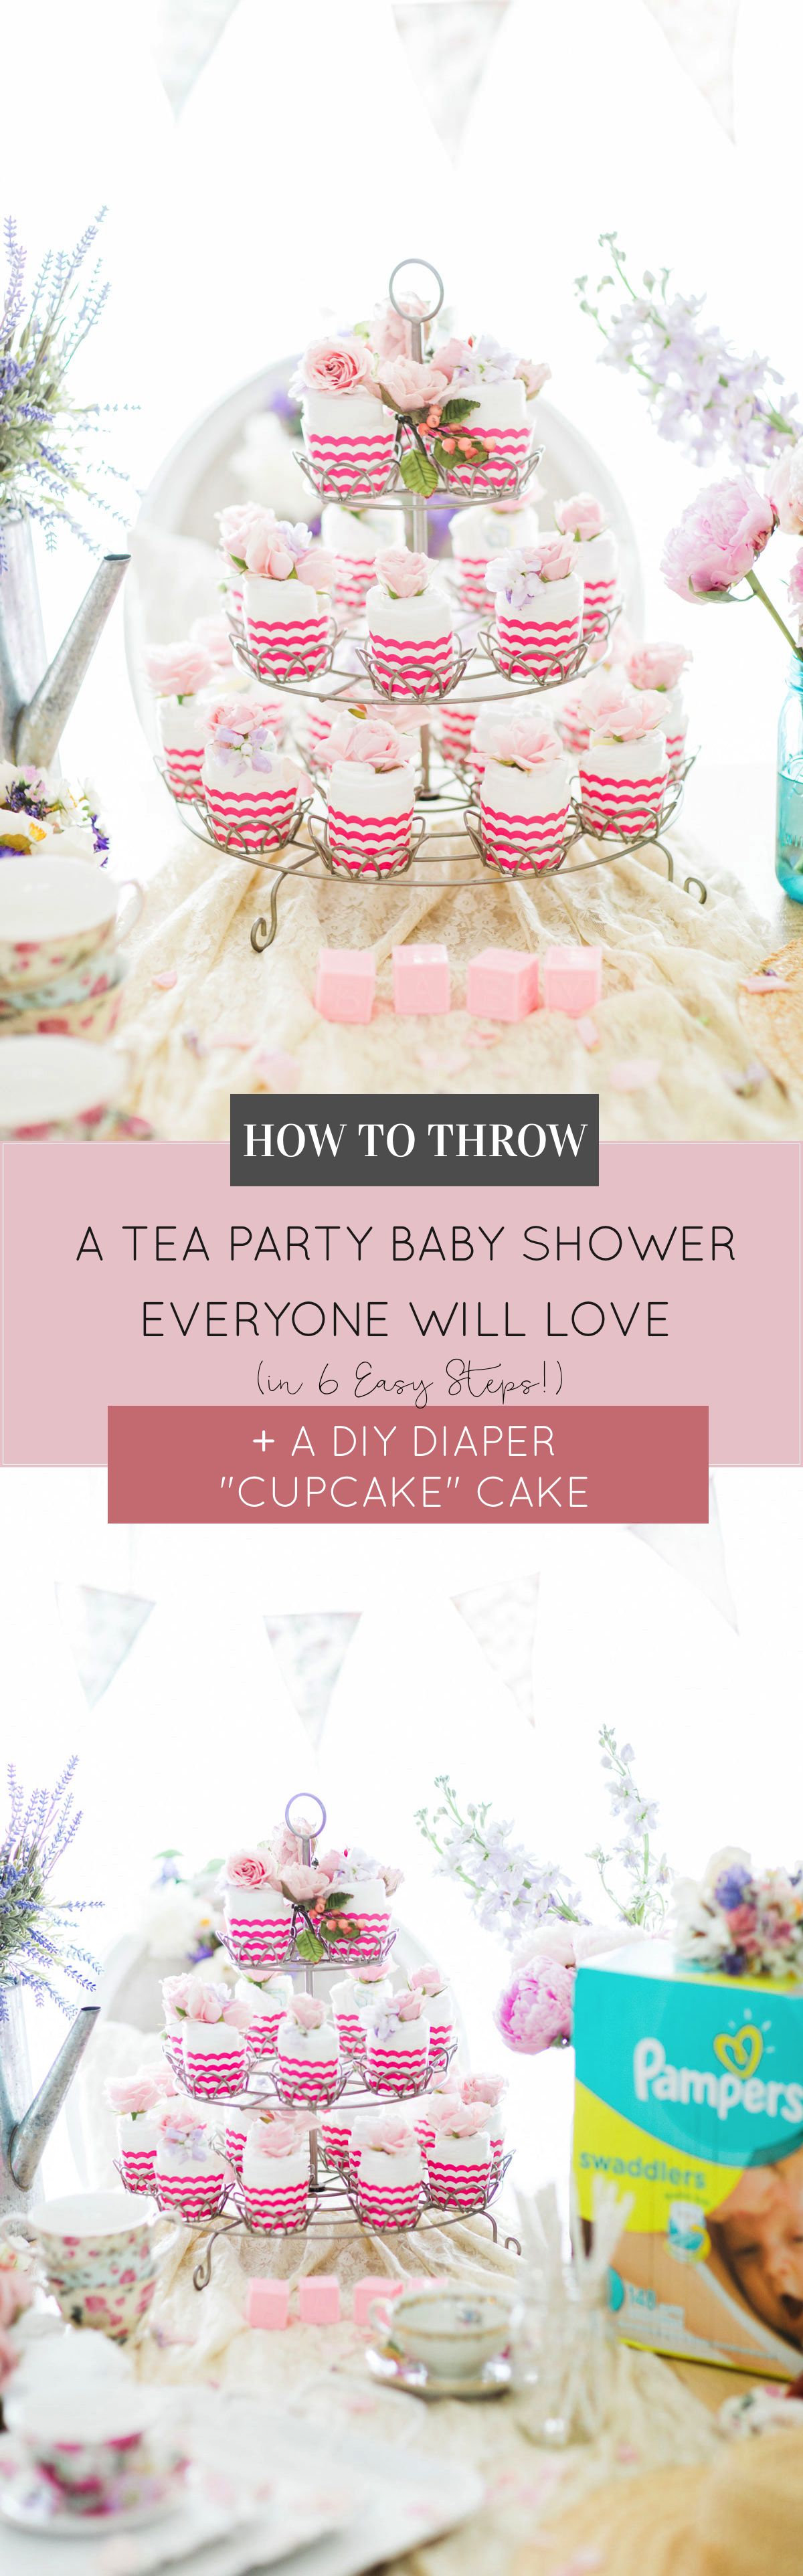 to throw a tea party baby shower in 6 easy steps plus a diy diaper